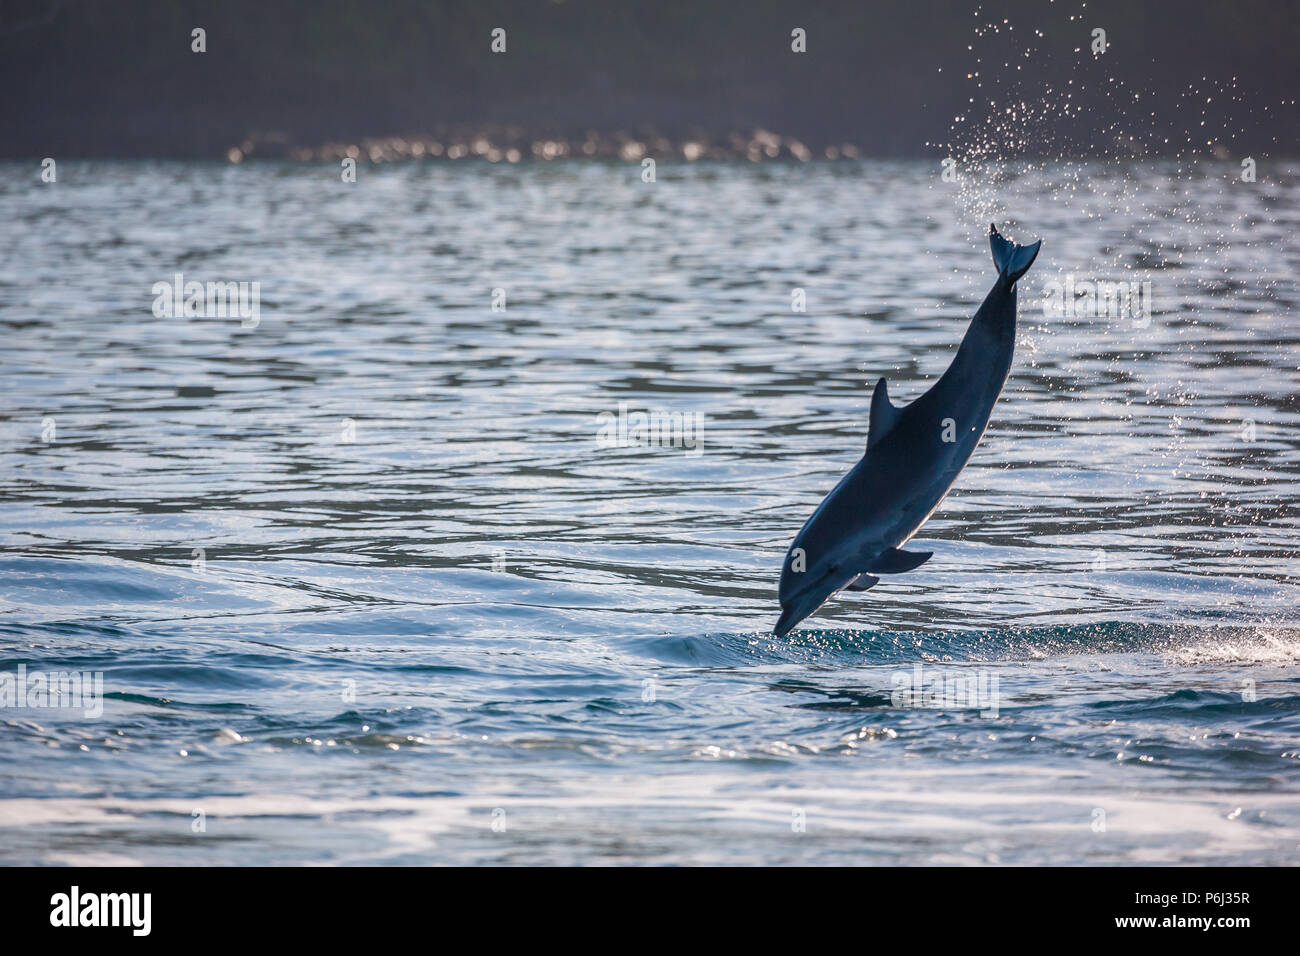 Jumping Spotted Dolphin in Isla Coiba national park, Pacific coast, Veraguas province, Republic of Panama. - Stock Image